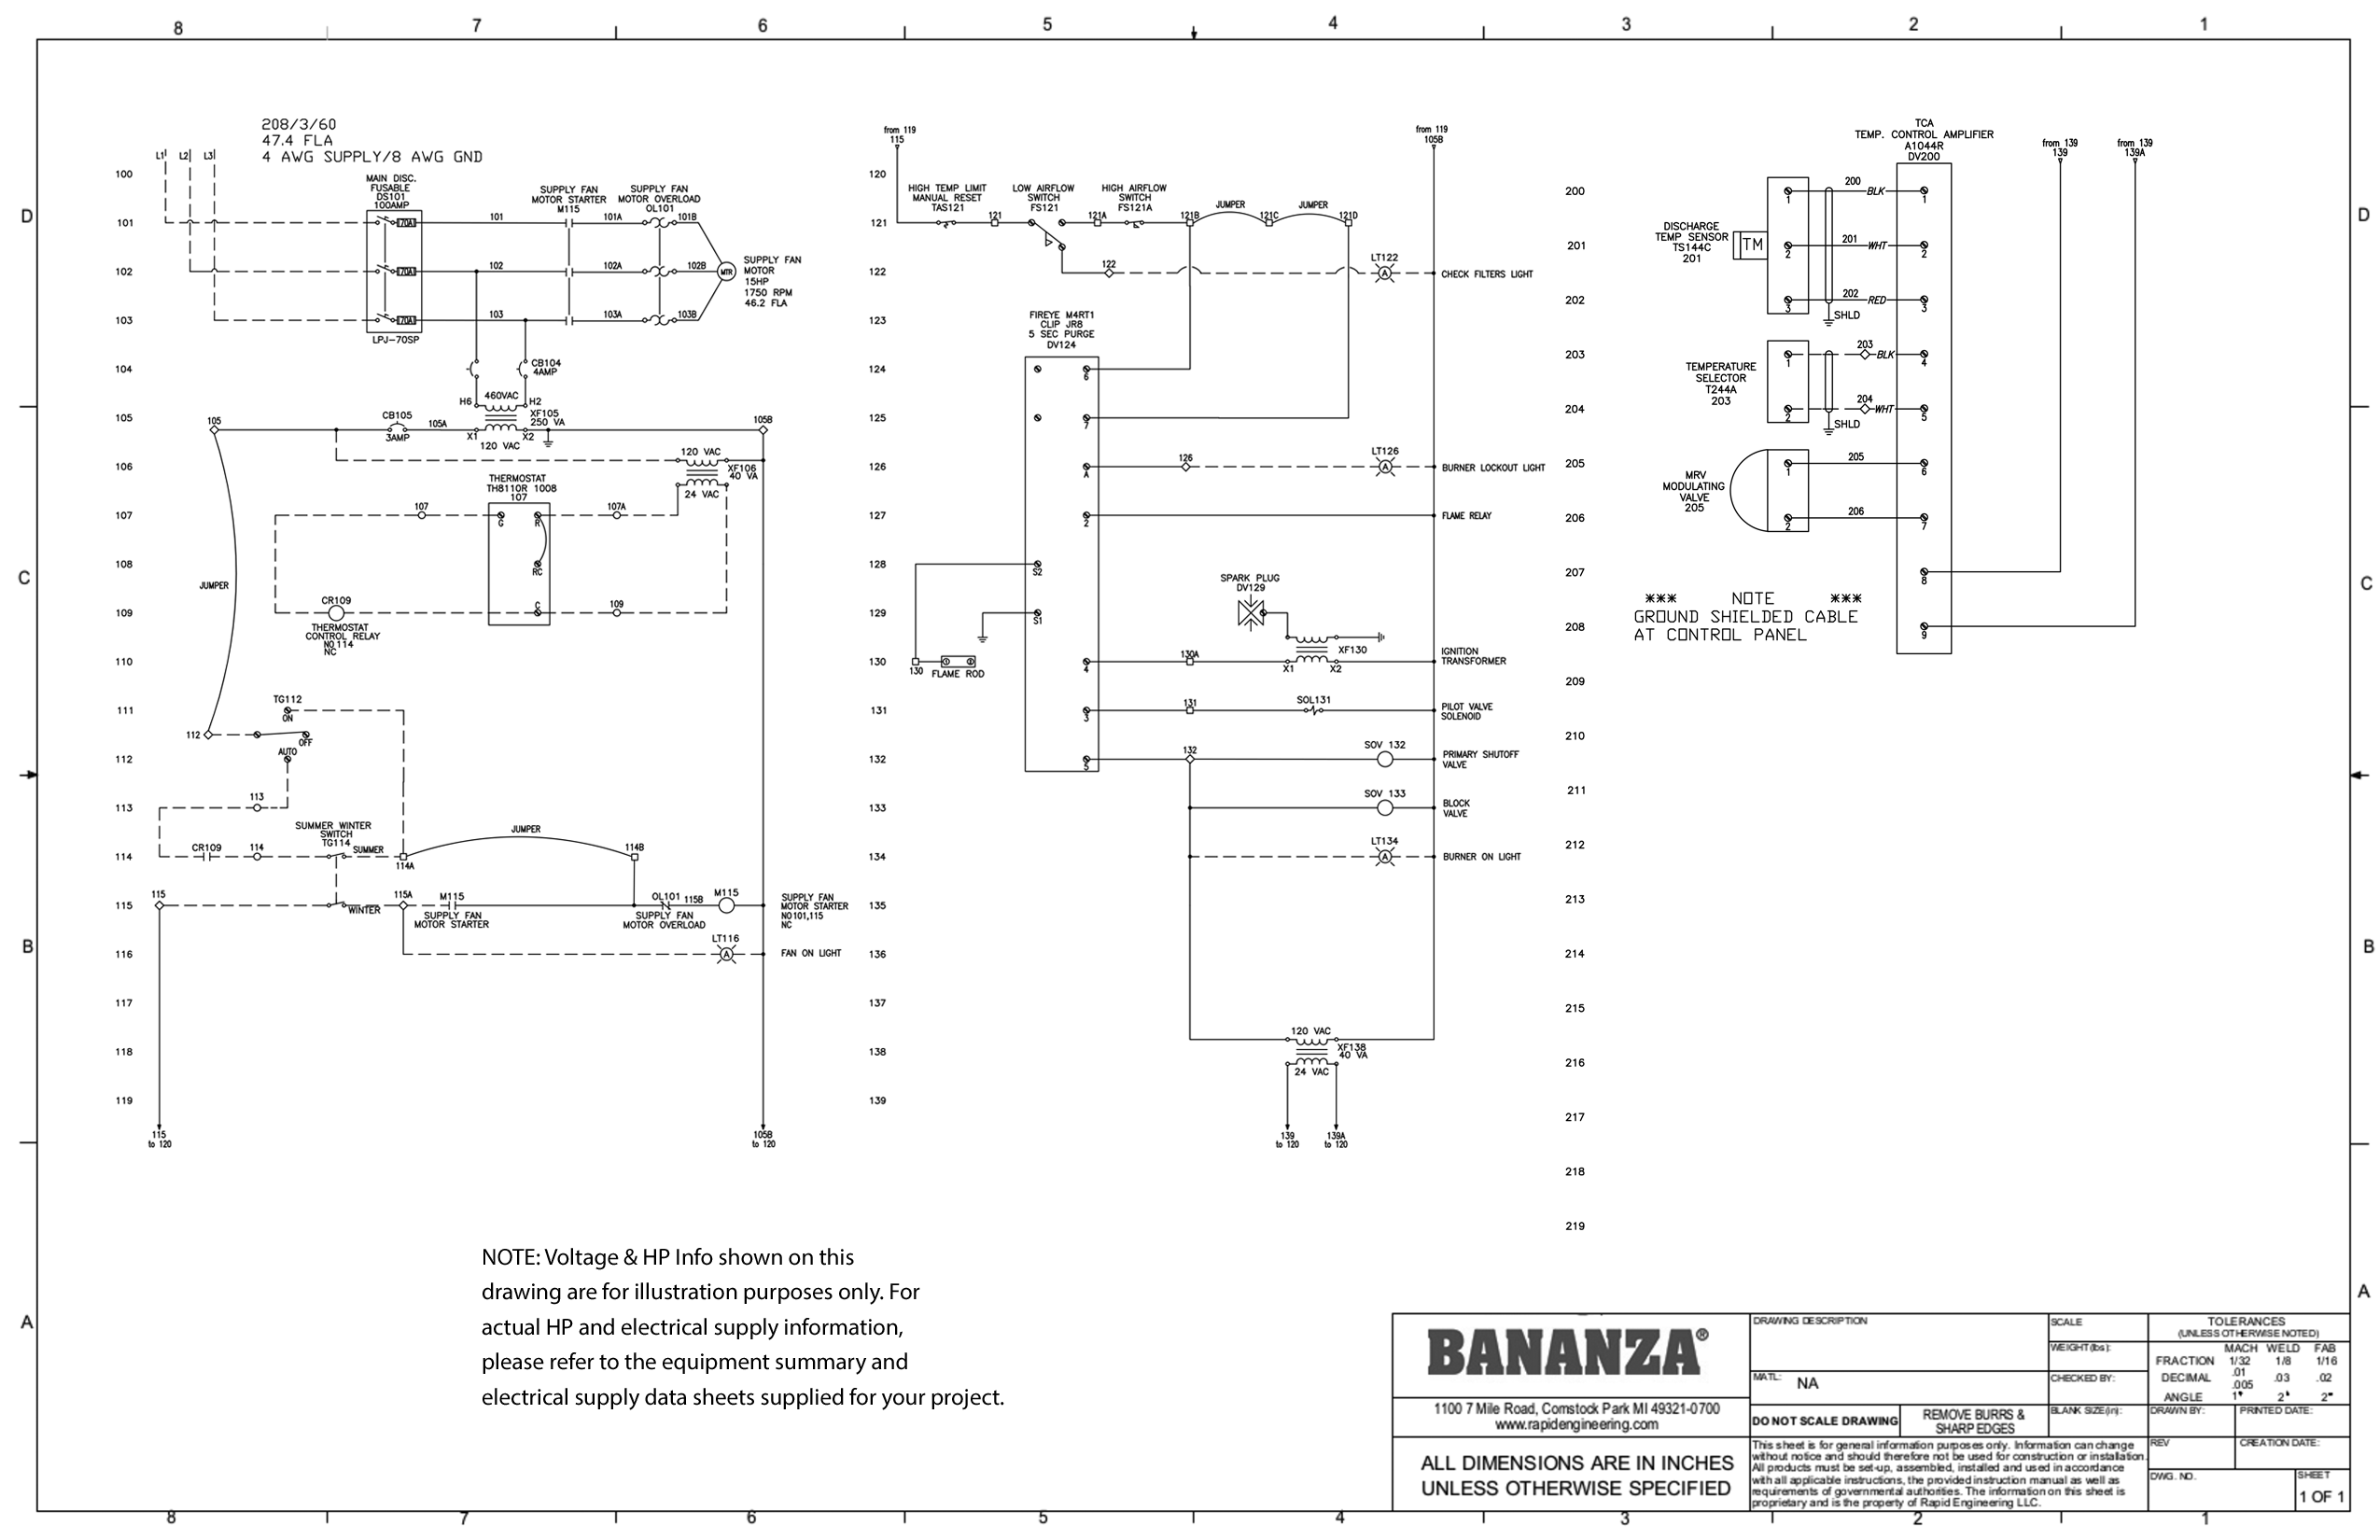 trane vav box wiring diagram electrical diagrams 2 way switch and ddc schematics